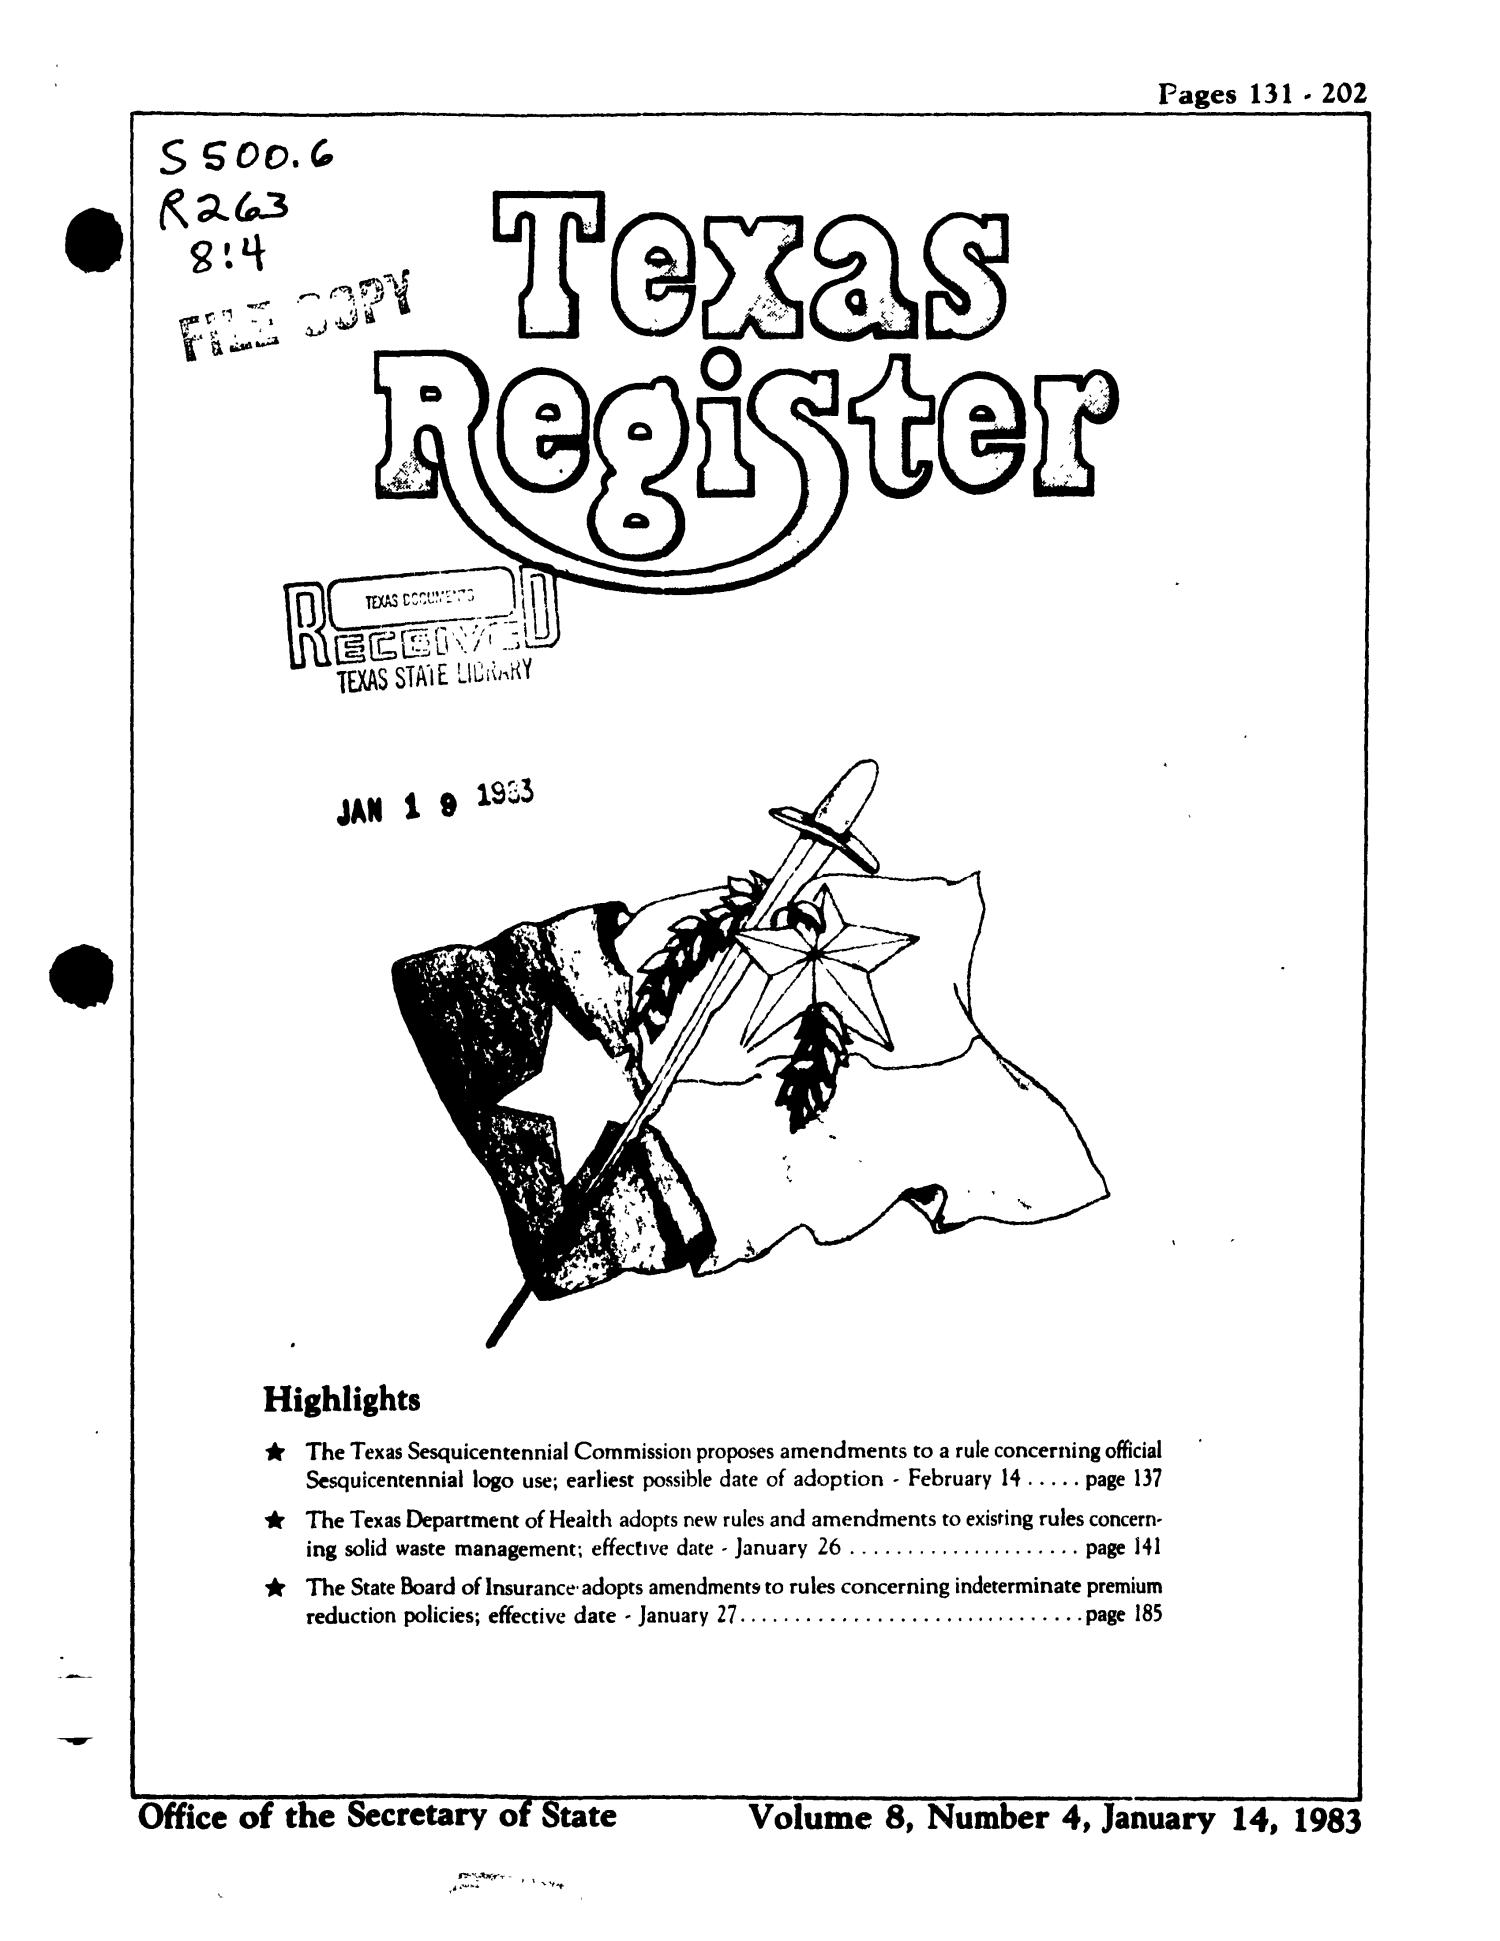 Texas Register, Volume 8, Number 4, Pages 131-202, January 14, 1983                                                                                                      Title Page